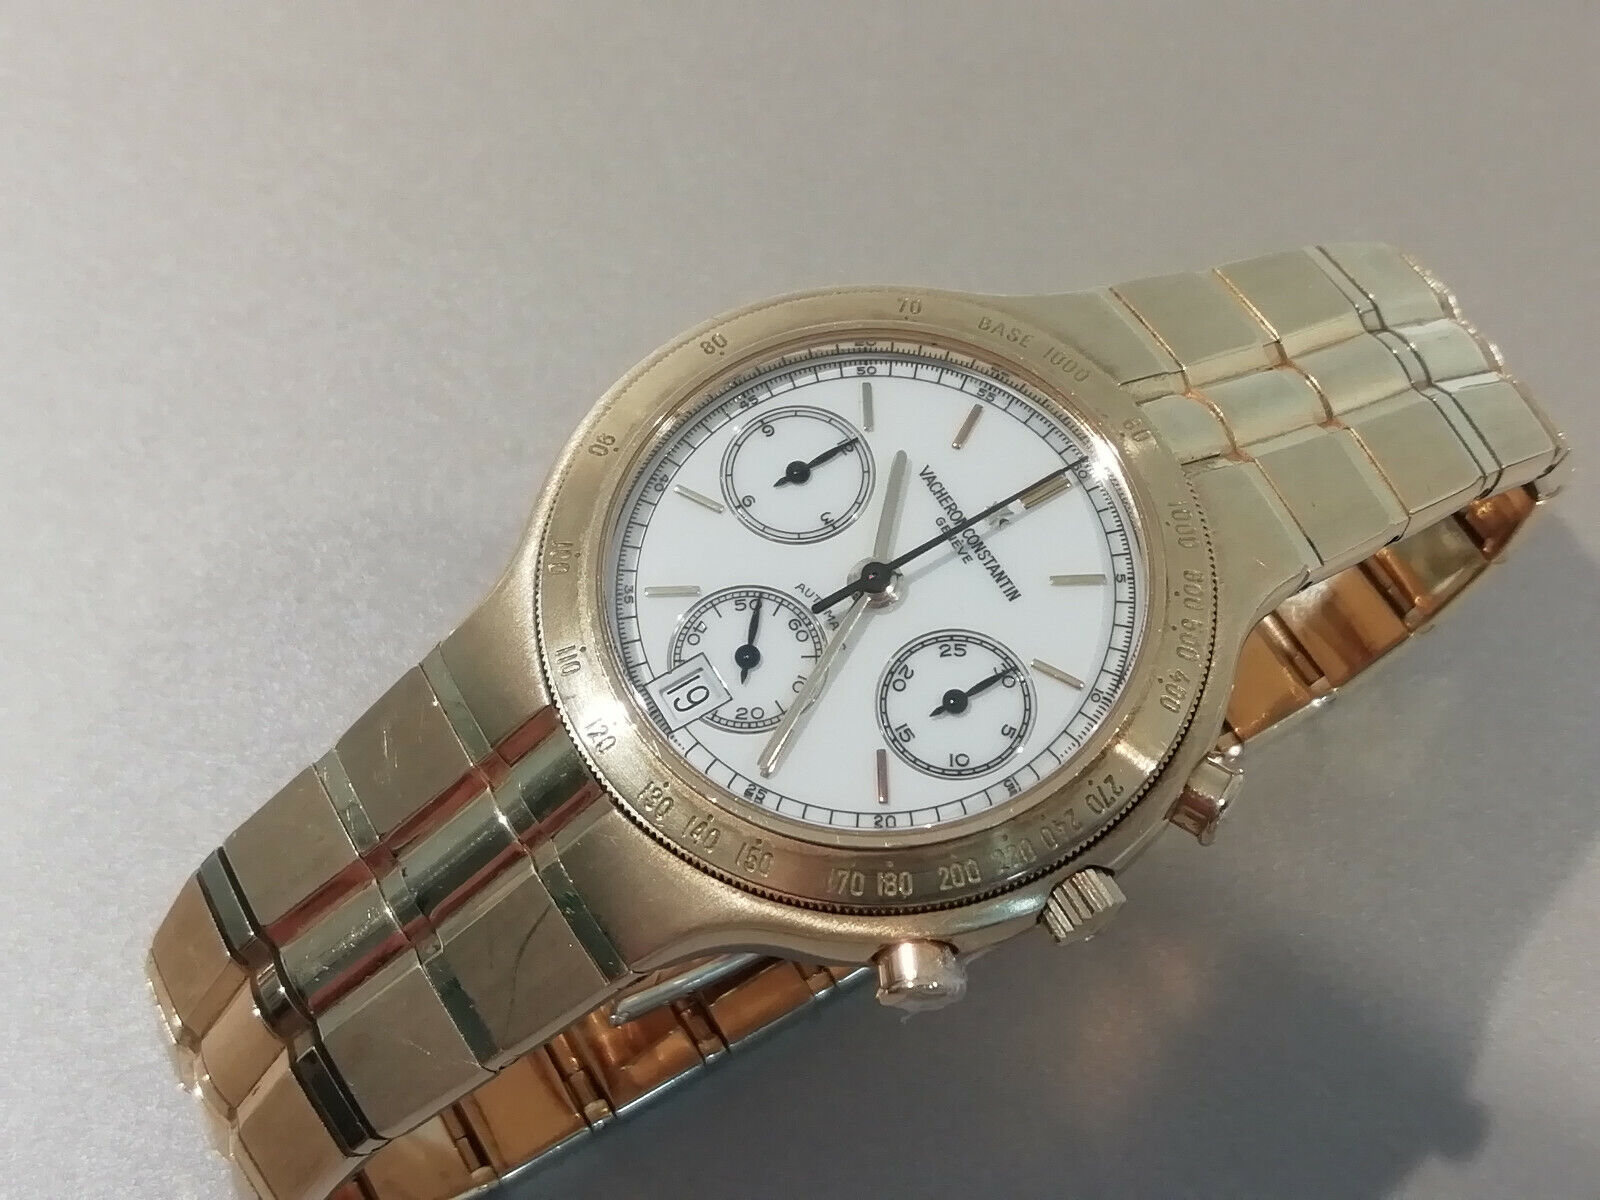 VACHERON CONSTANTIN PHIDIAS Chronograph Solid 18k Yellow Gold 35mm Gents Watch - watch picture 1